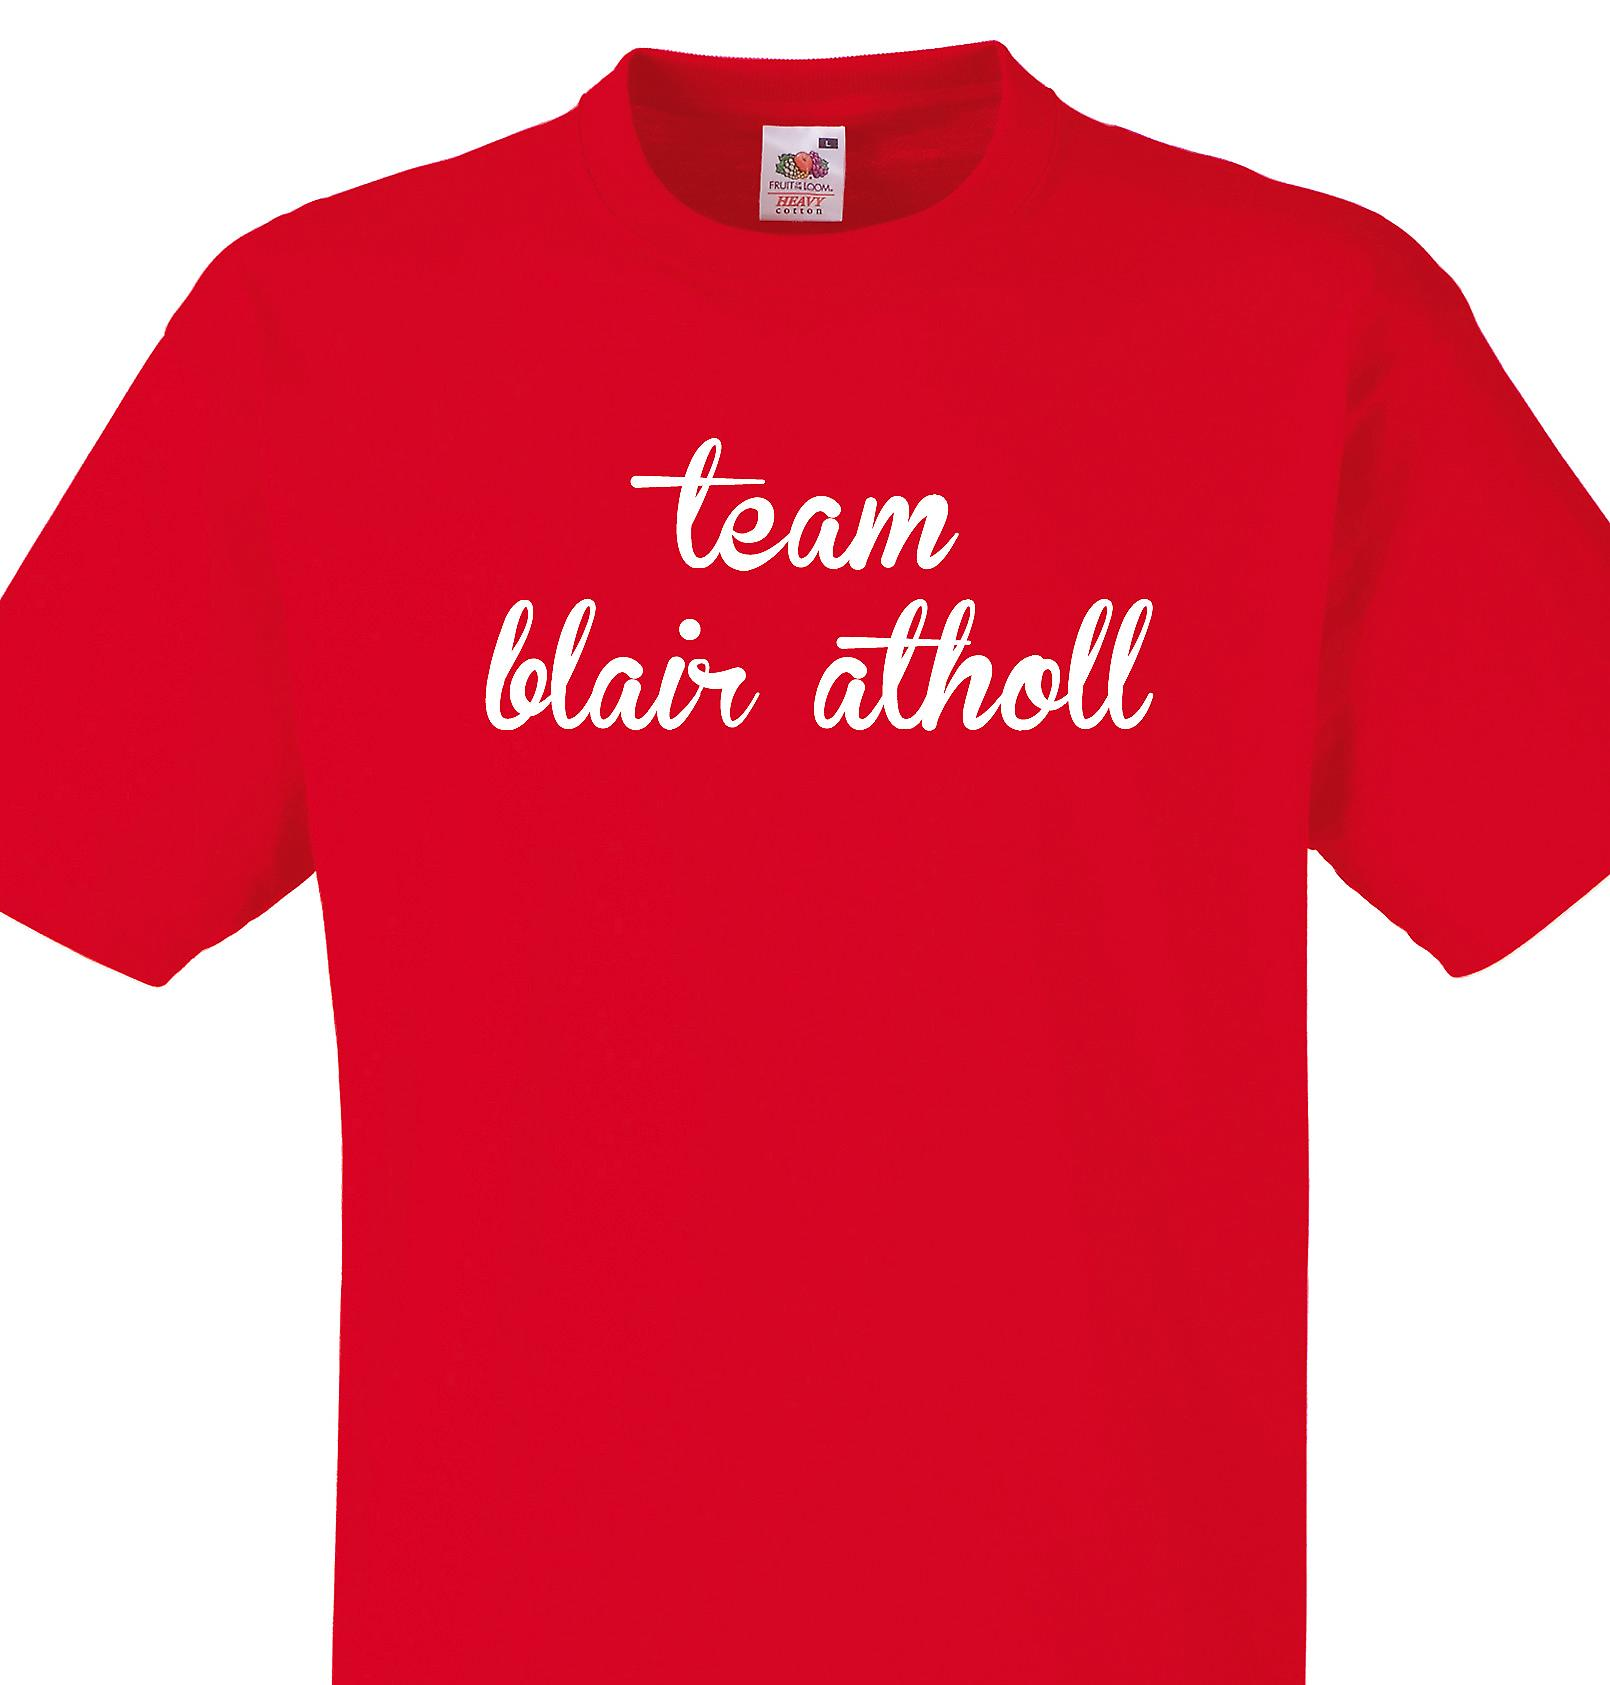 Team Blair atholl Red T shirt